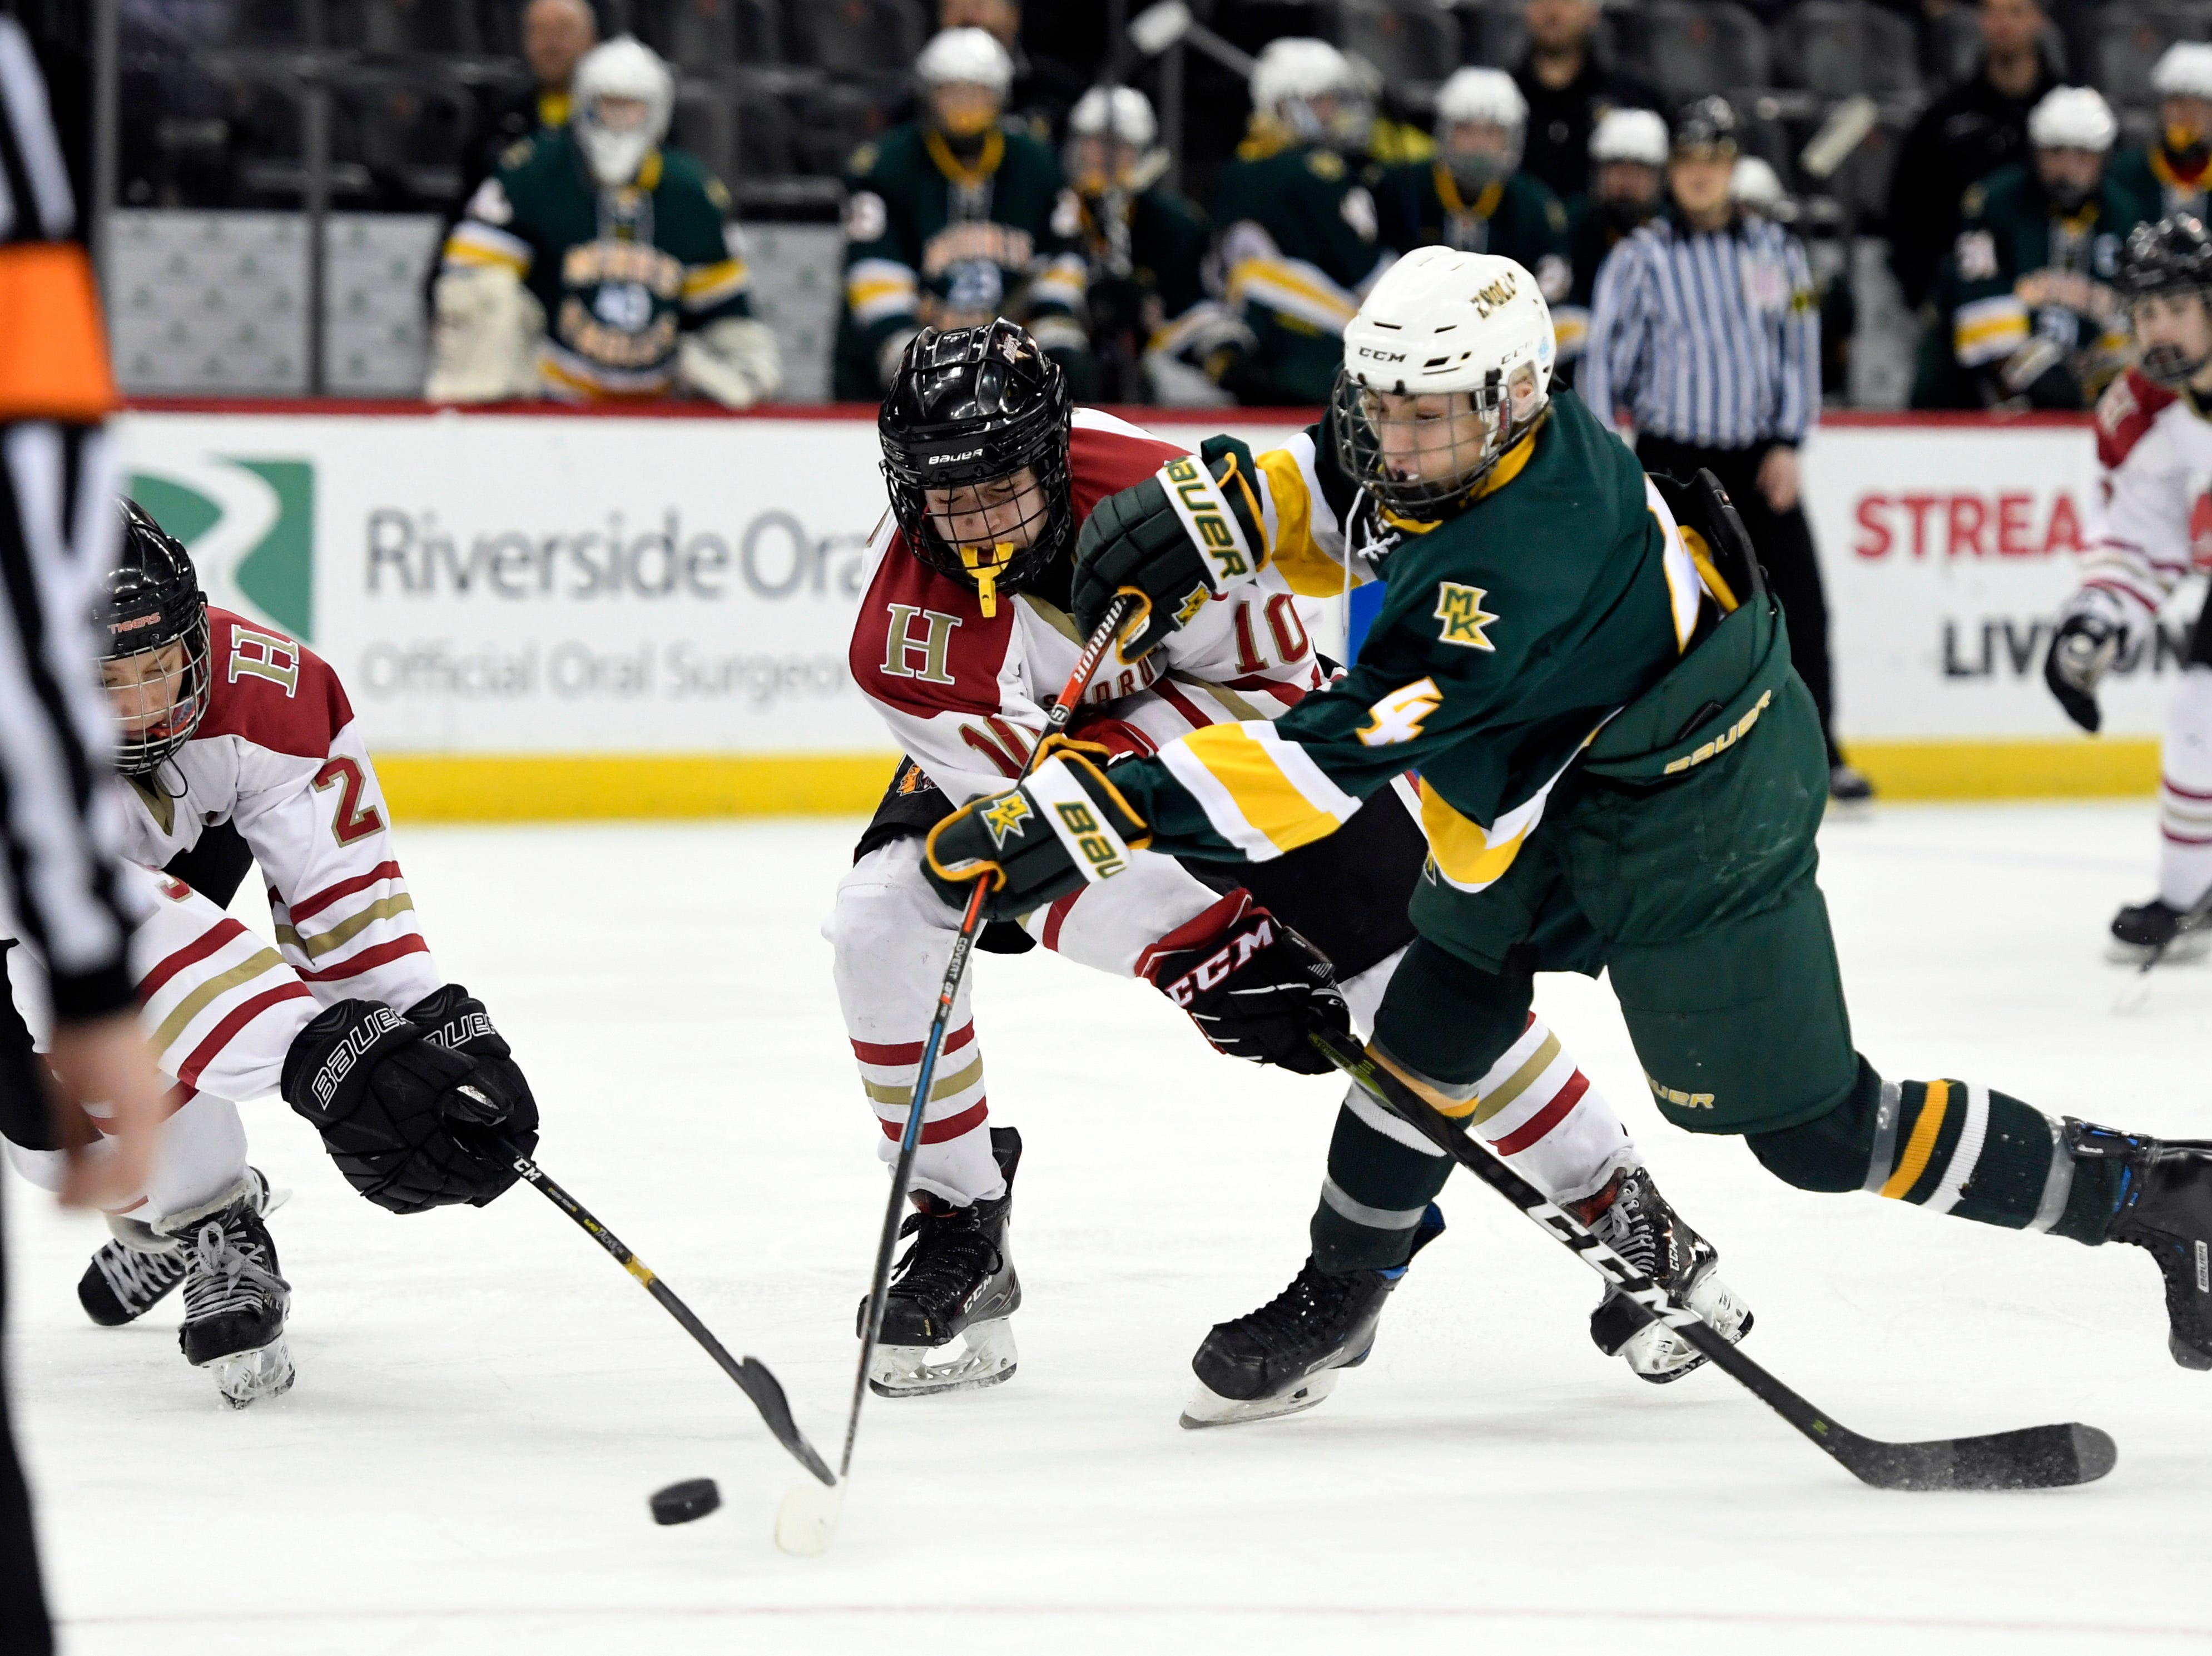 Morris Knolls/Hills' Gehrig Eckoff (4) scores the third goal of the game against Hillsborough in the second period in the Public A ice hockey final at the Prudential Center on Monday, March 4, 2019, in Newark.